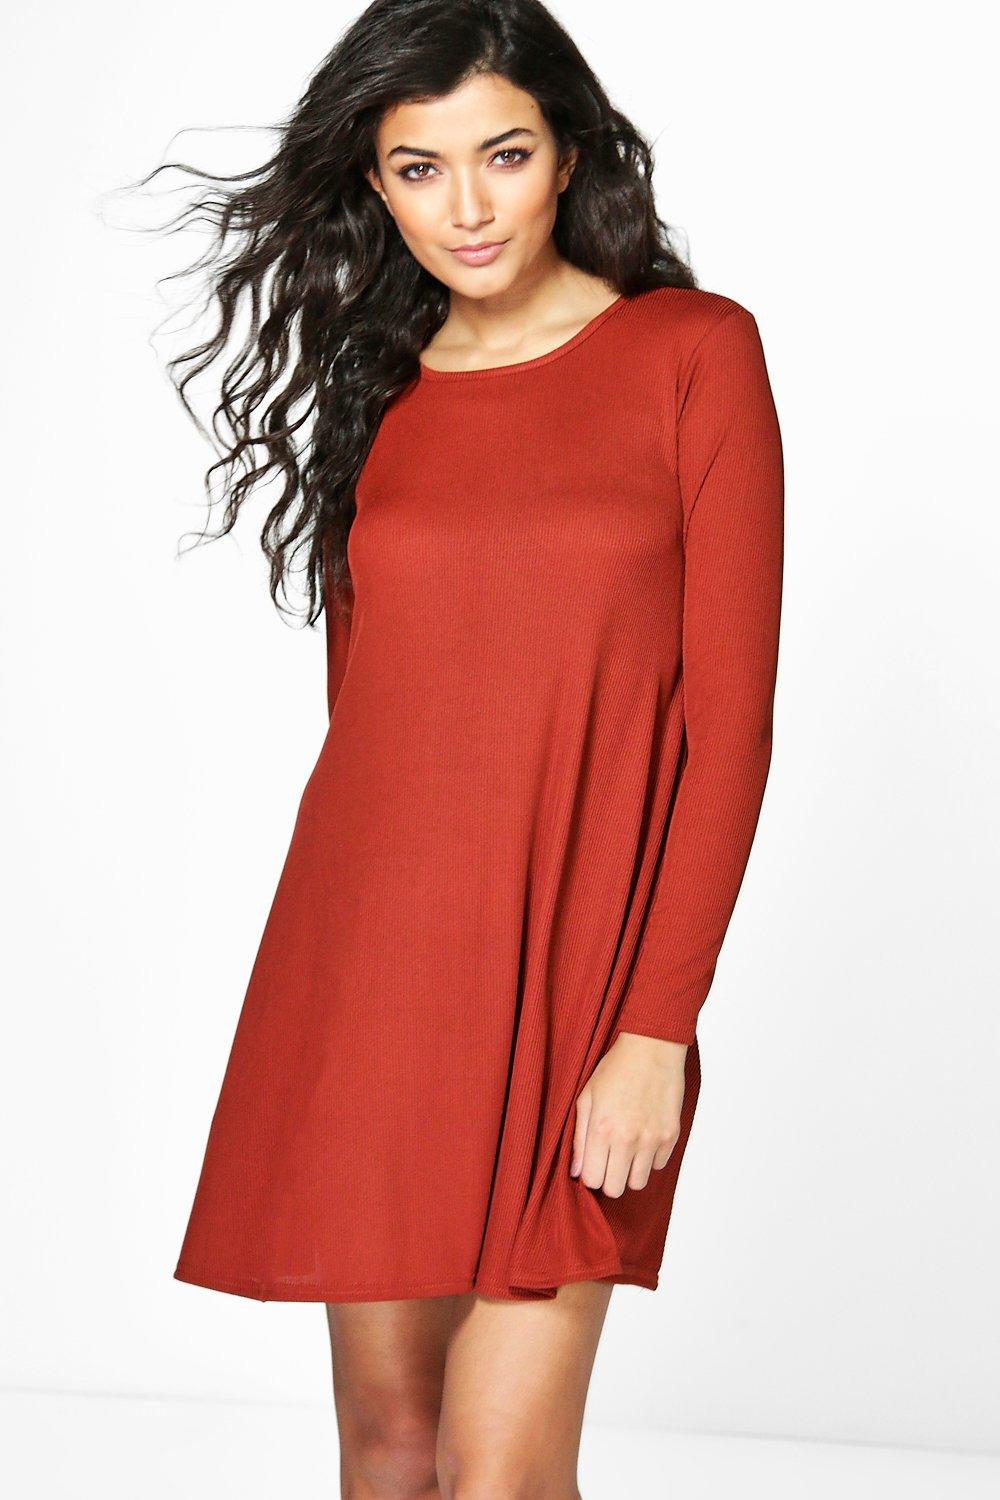 Sophia Skinny Rib Knit Swing Dress